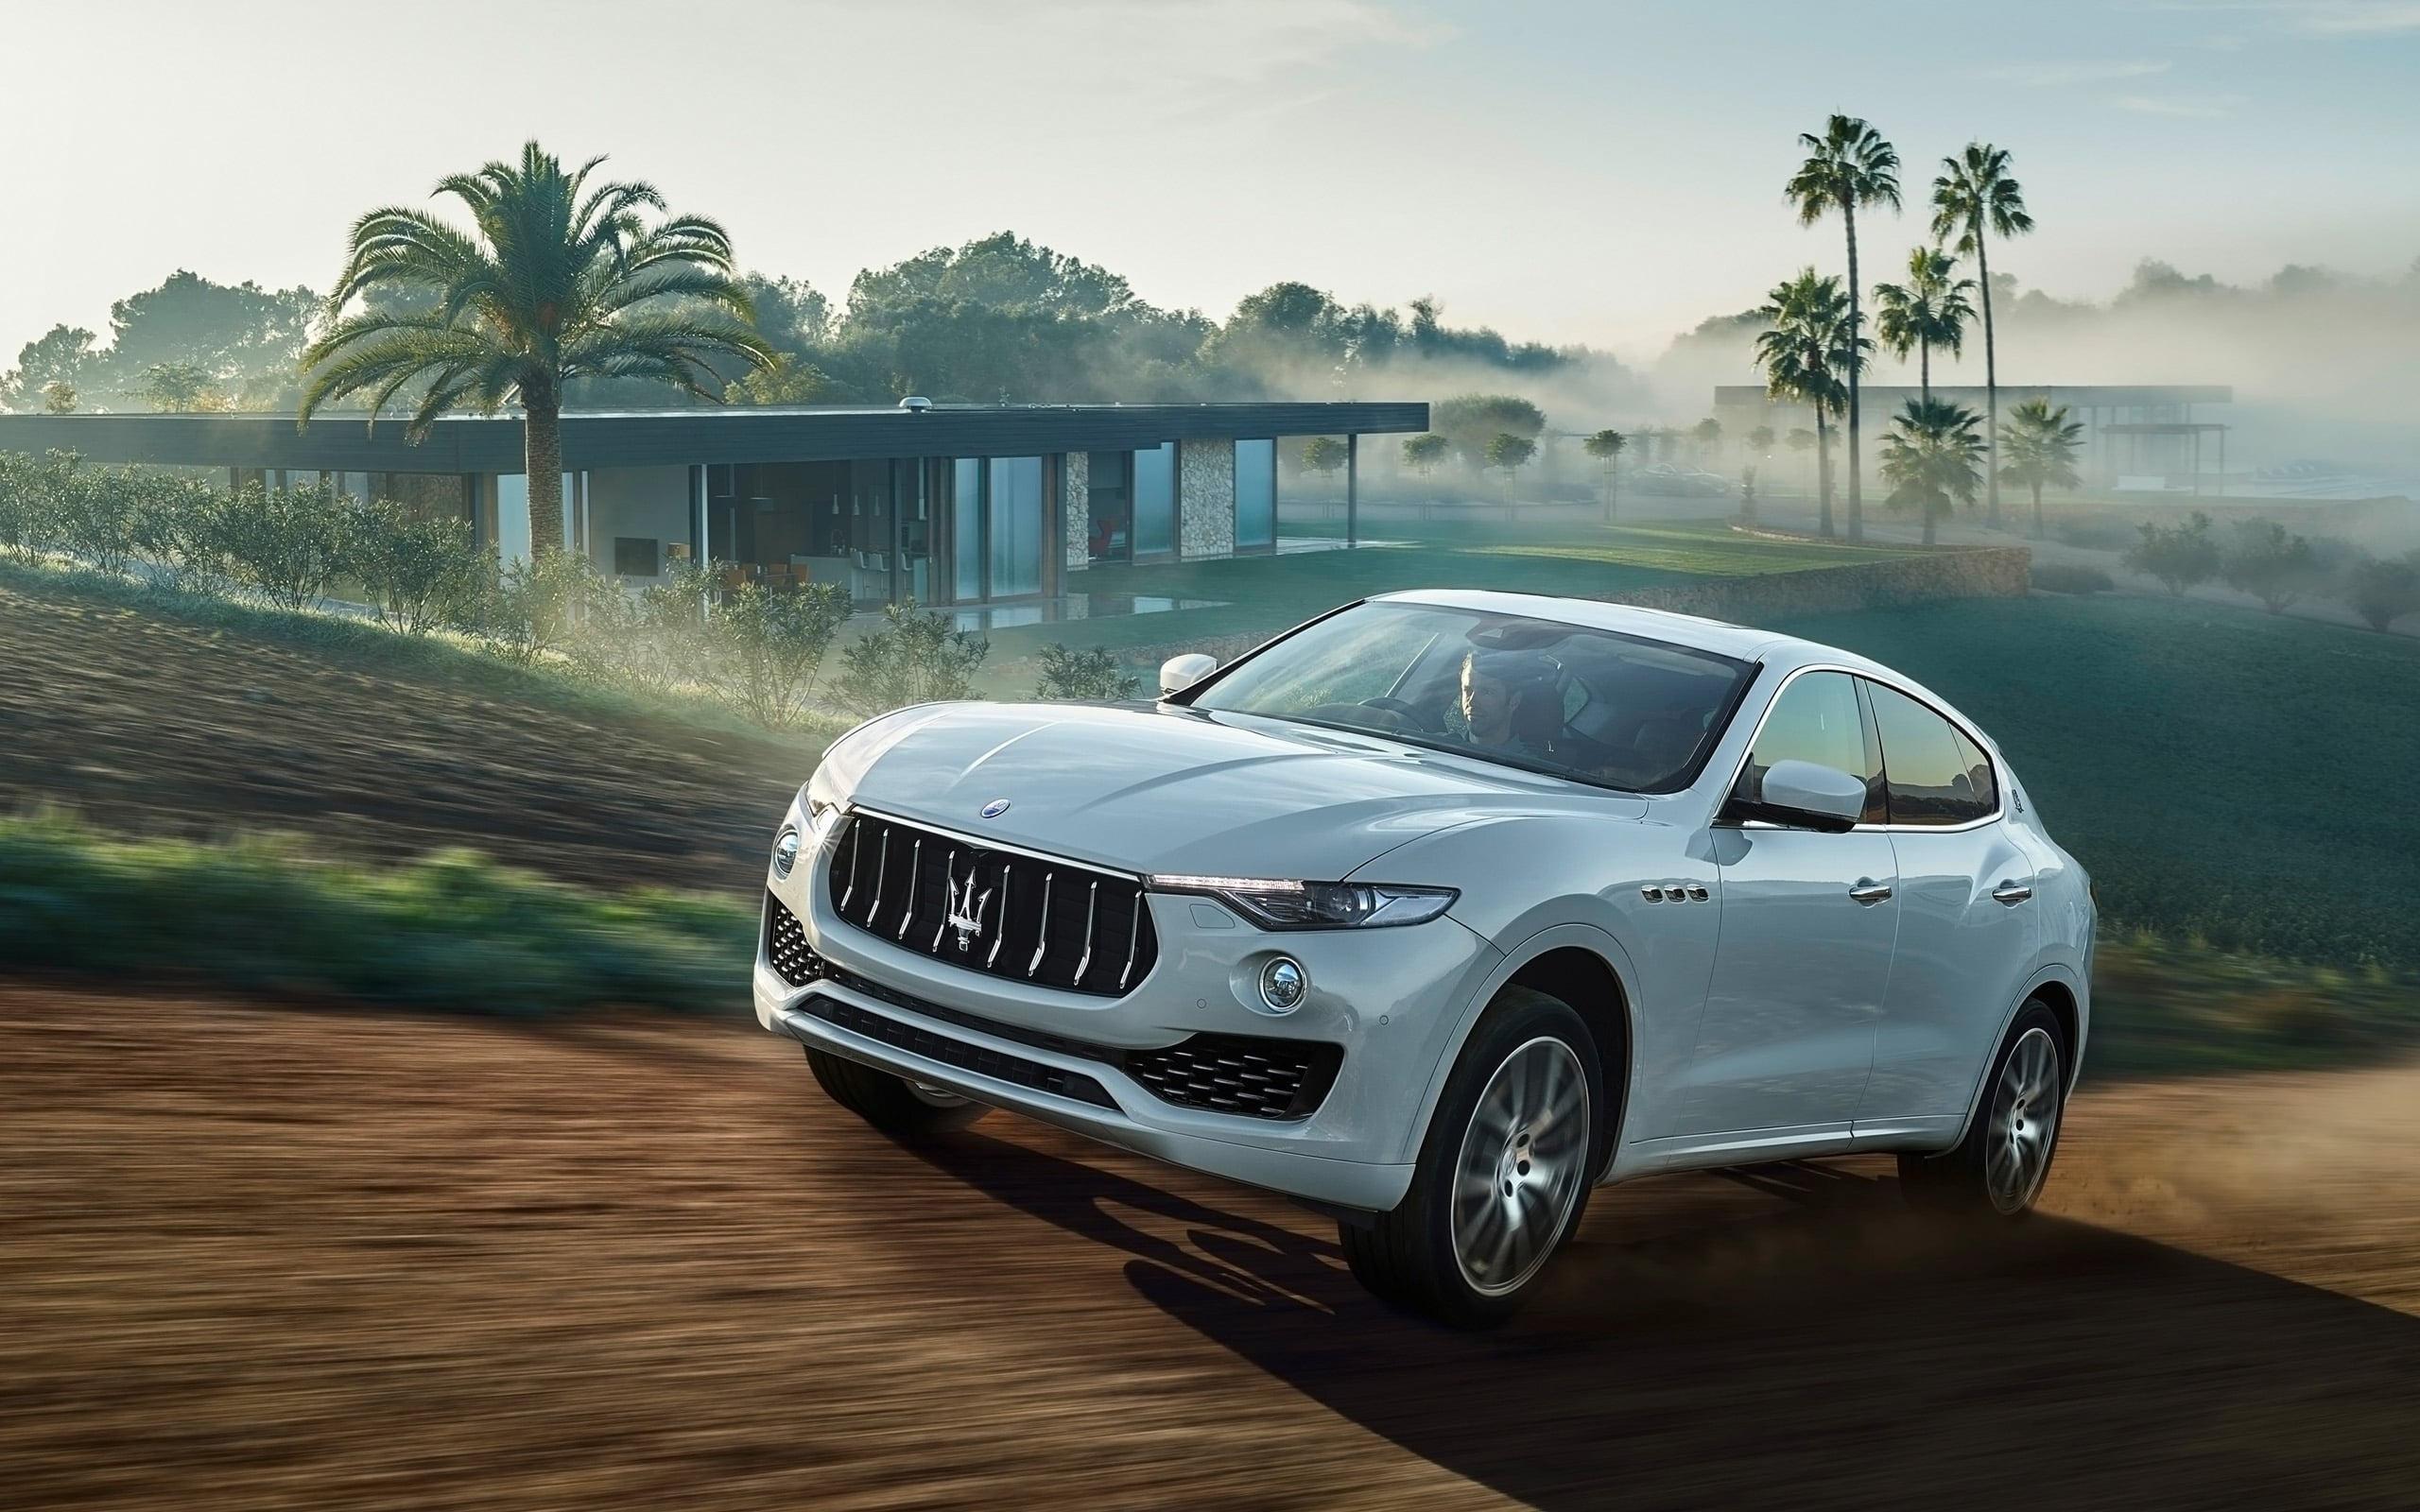 2020 Maserati Levante HD wallpapers High Quality